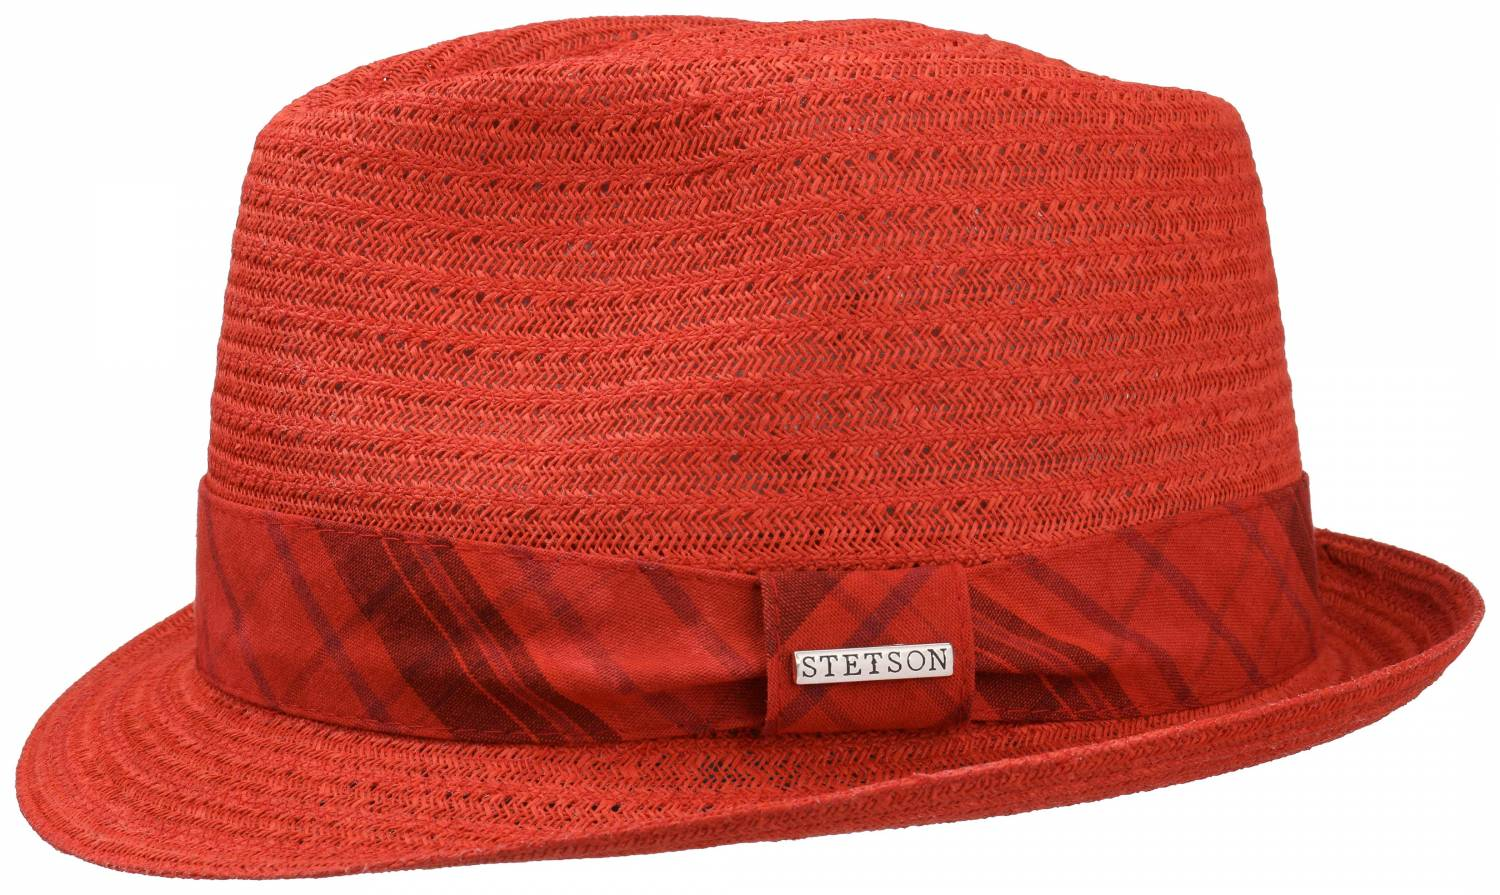 100% quality incredible prices footwear Stetson Player Trilby aus Stroh rot